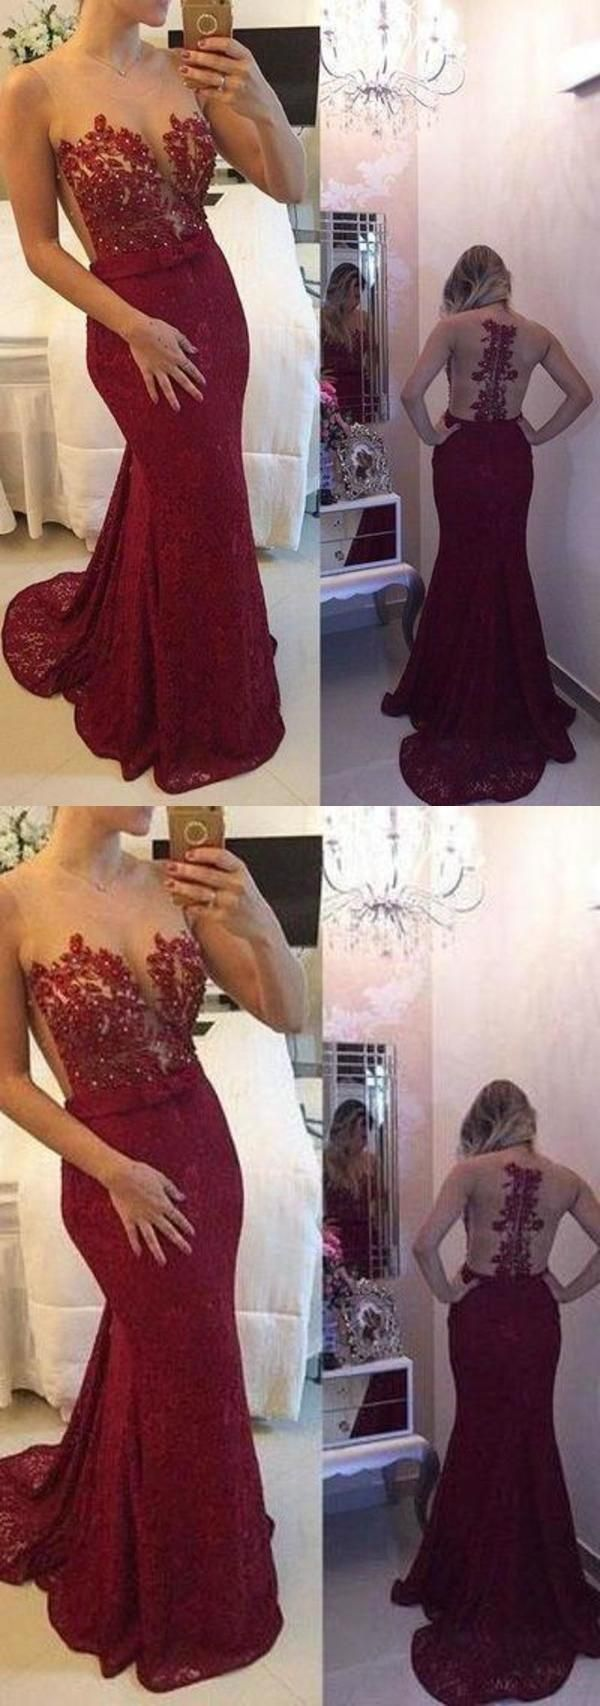 New Arrival Lace Prom Dresses Mermaid Prom Dresses Wine Red Prom Dresses Mermaid Prom Dresses Red Prom Dress Mermaid Dresses [ 1706 x 600 Pixel ]